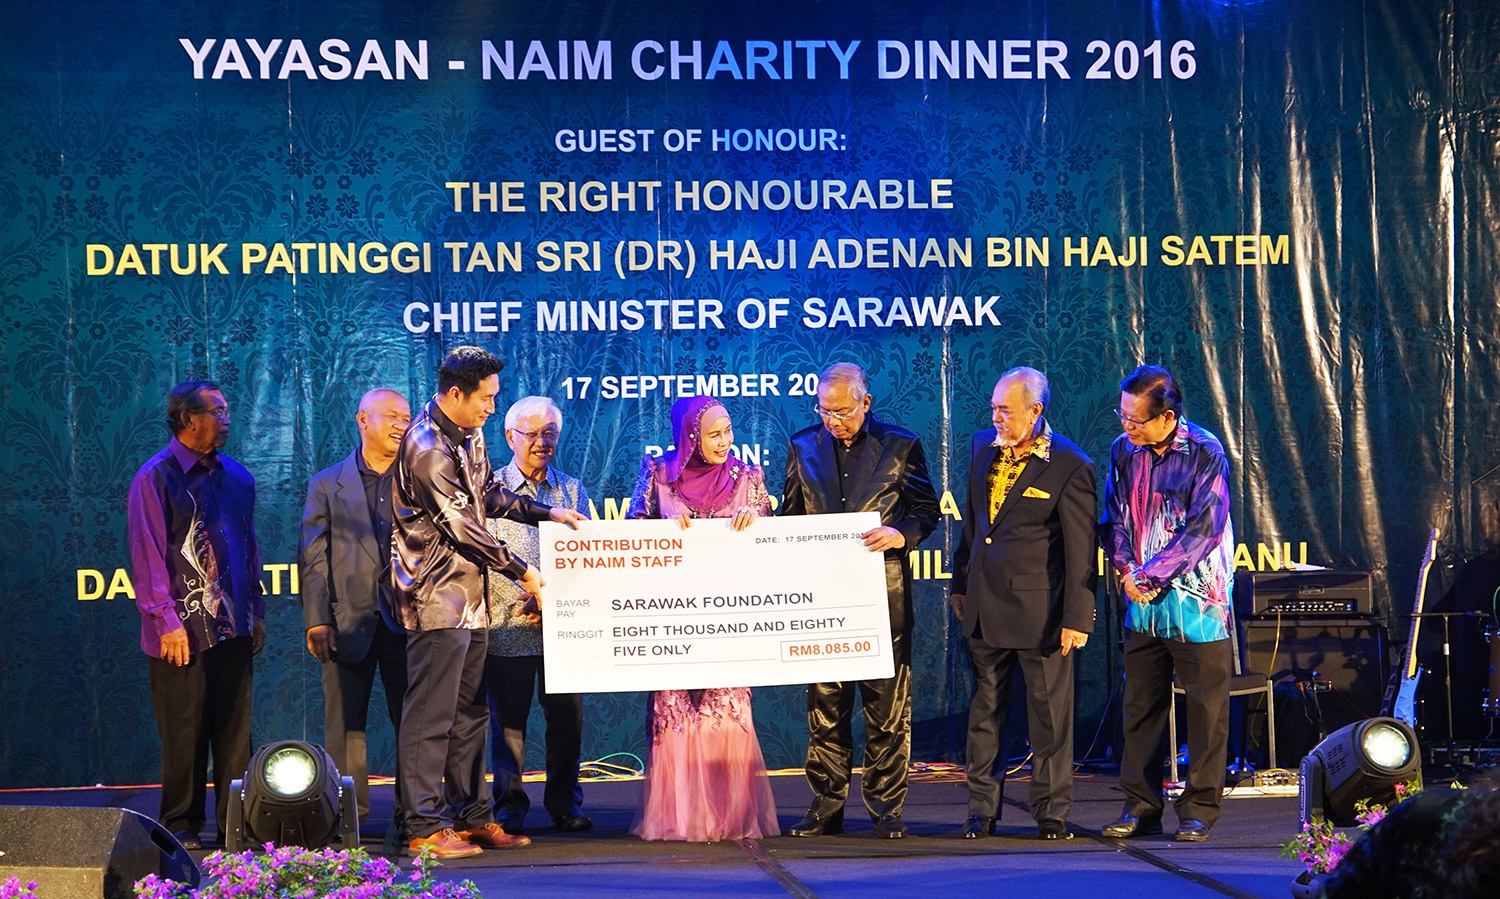 * Abg Mahathir representing Naim's workforce handing over our contribution to the Patron of the charity dinner YABhg Datin Patinggi Datuk Amar Hajah Jamilah Bt Haji Anu, witnessed by The Right Honourable Datuk Patinggi Tan Sri (Dr) Haji Adenan Bin Haji Satem, Chief Minister of Sarawak, who was accompanied by Datuk Hasmi Hasnan (2nd from left) and Datuk Amar Hamed Sepawi (4th from left)